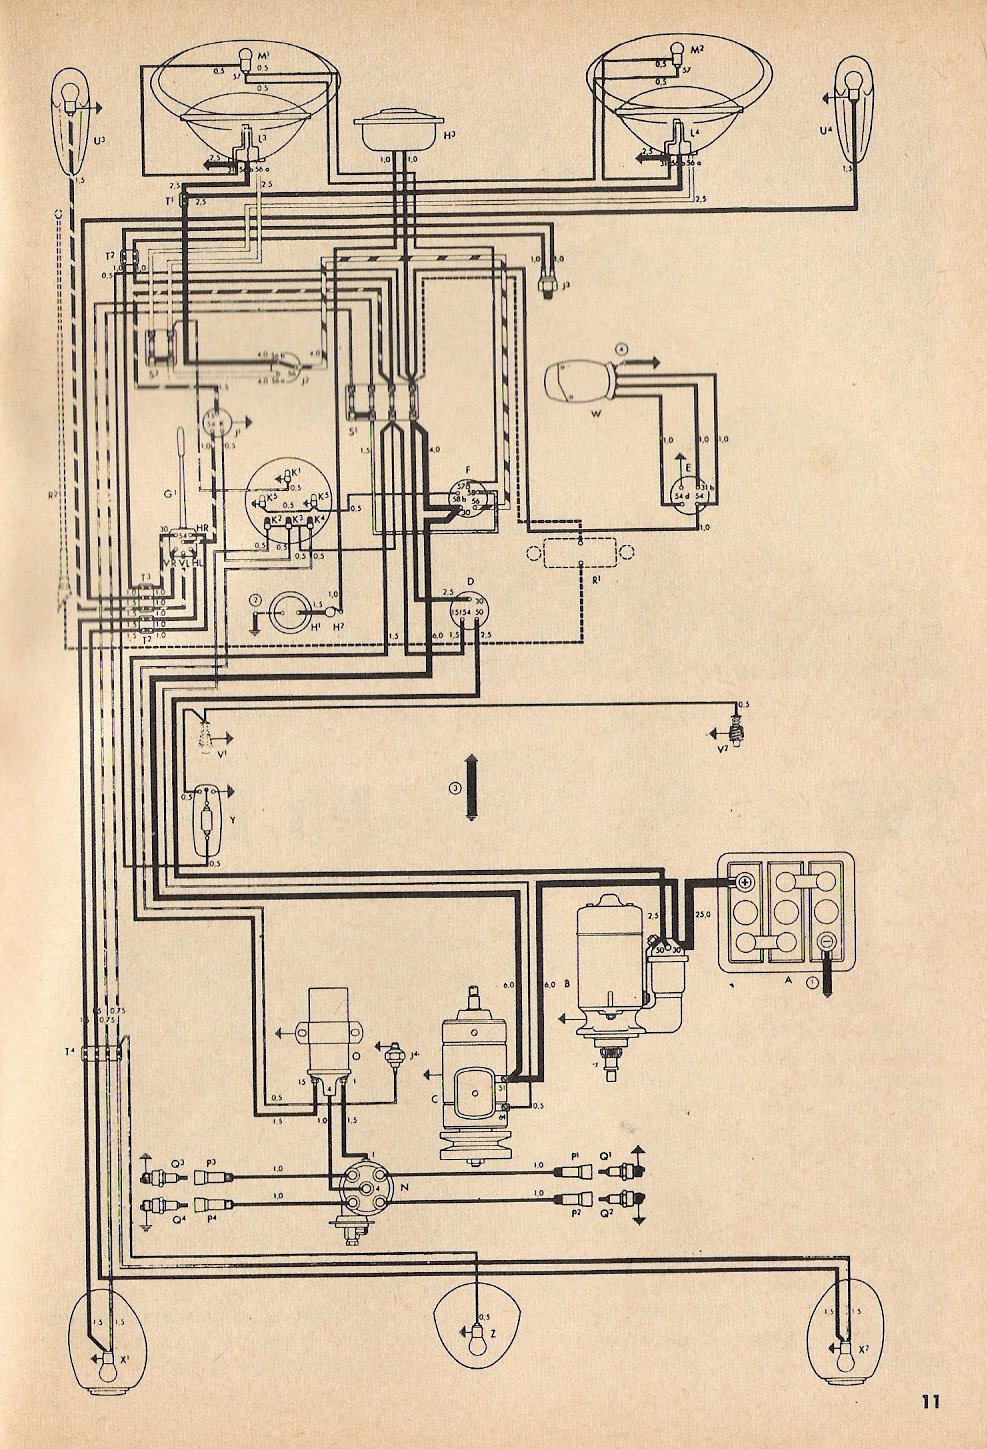 1966 Bug Wiring Diagram Schematic Thesamba Com Type 1 Wiring Diagrams